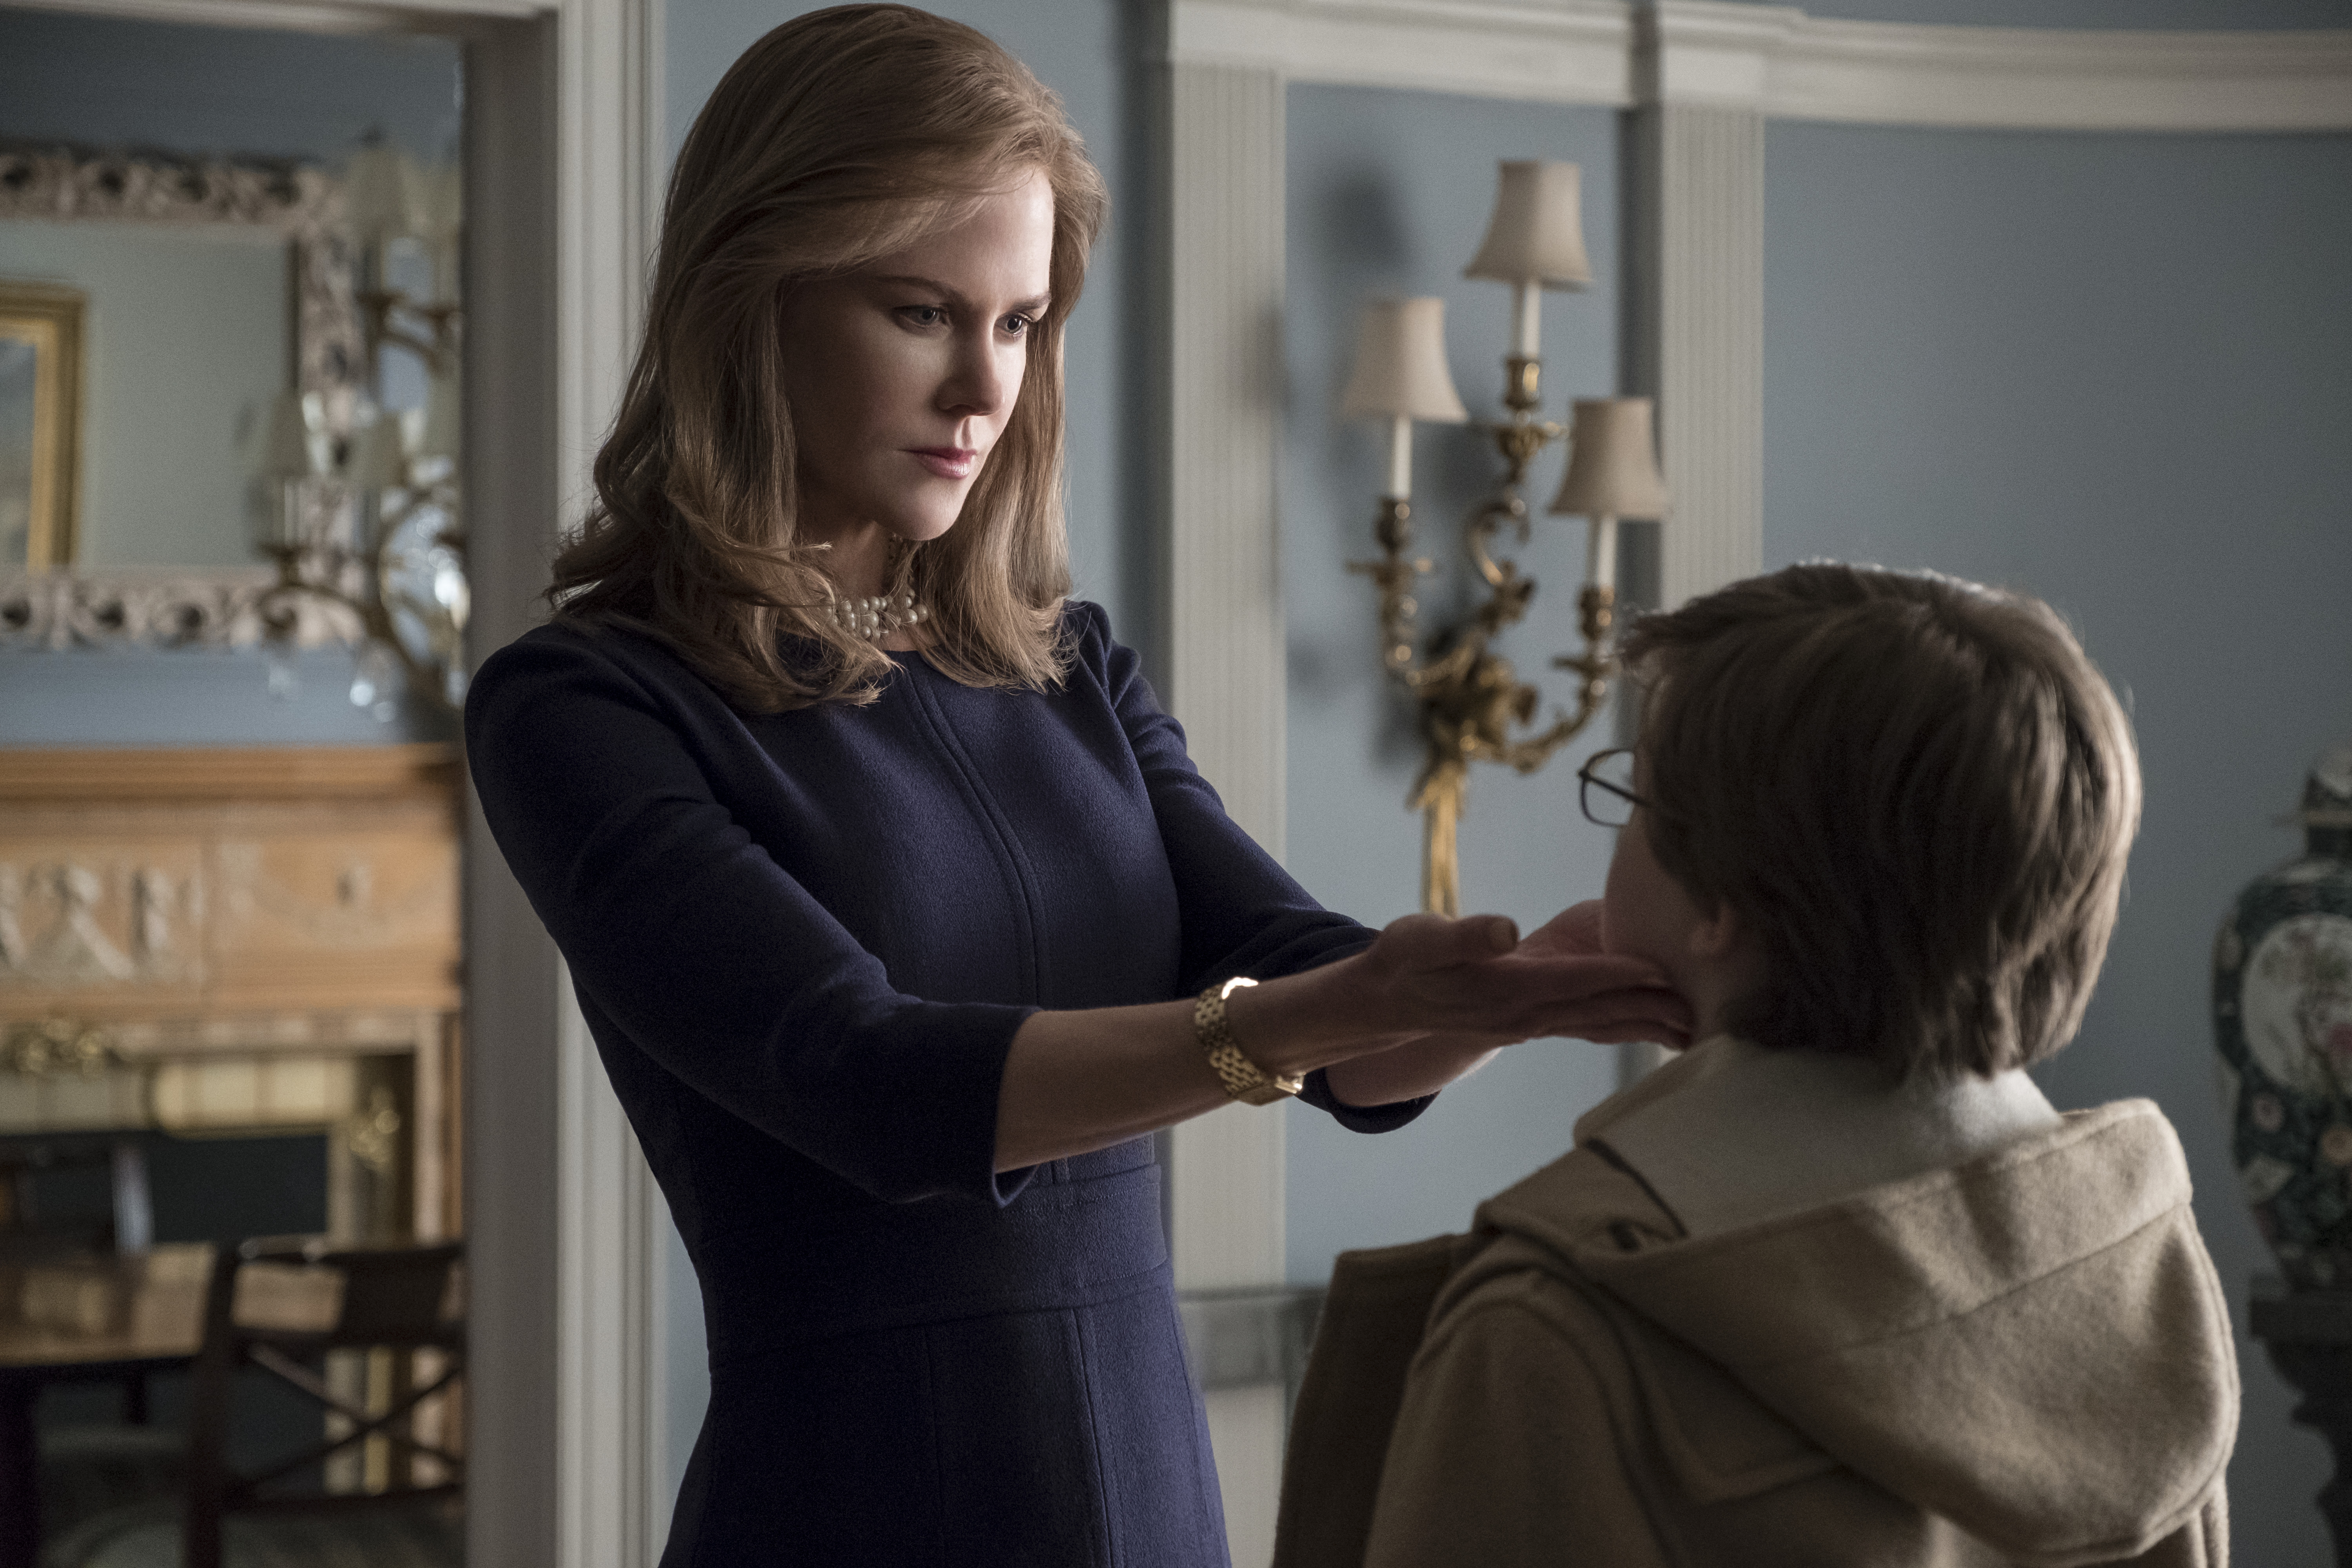 Nicole Kidman and Oakes Fegley in 'The Goldfinch'